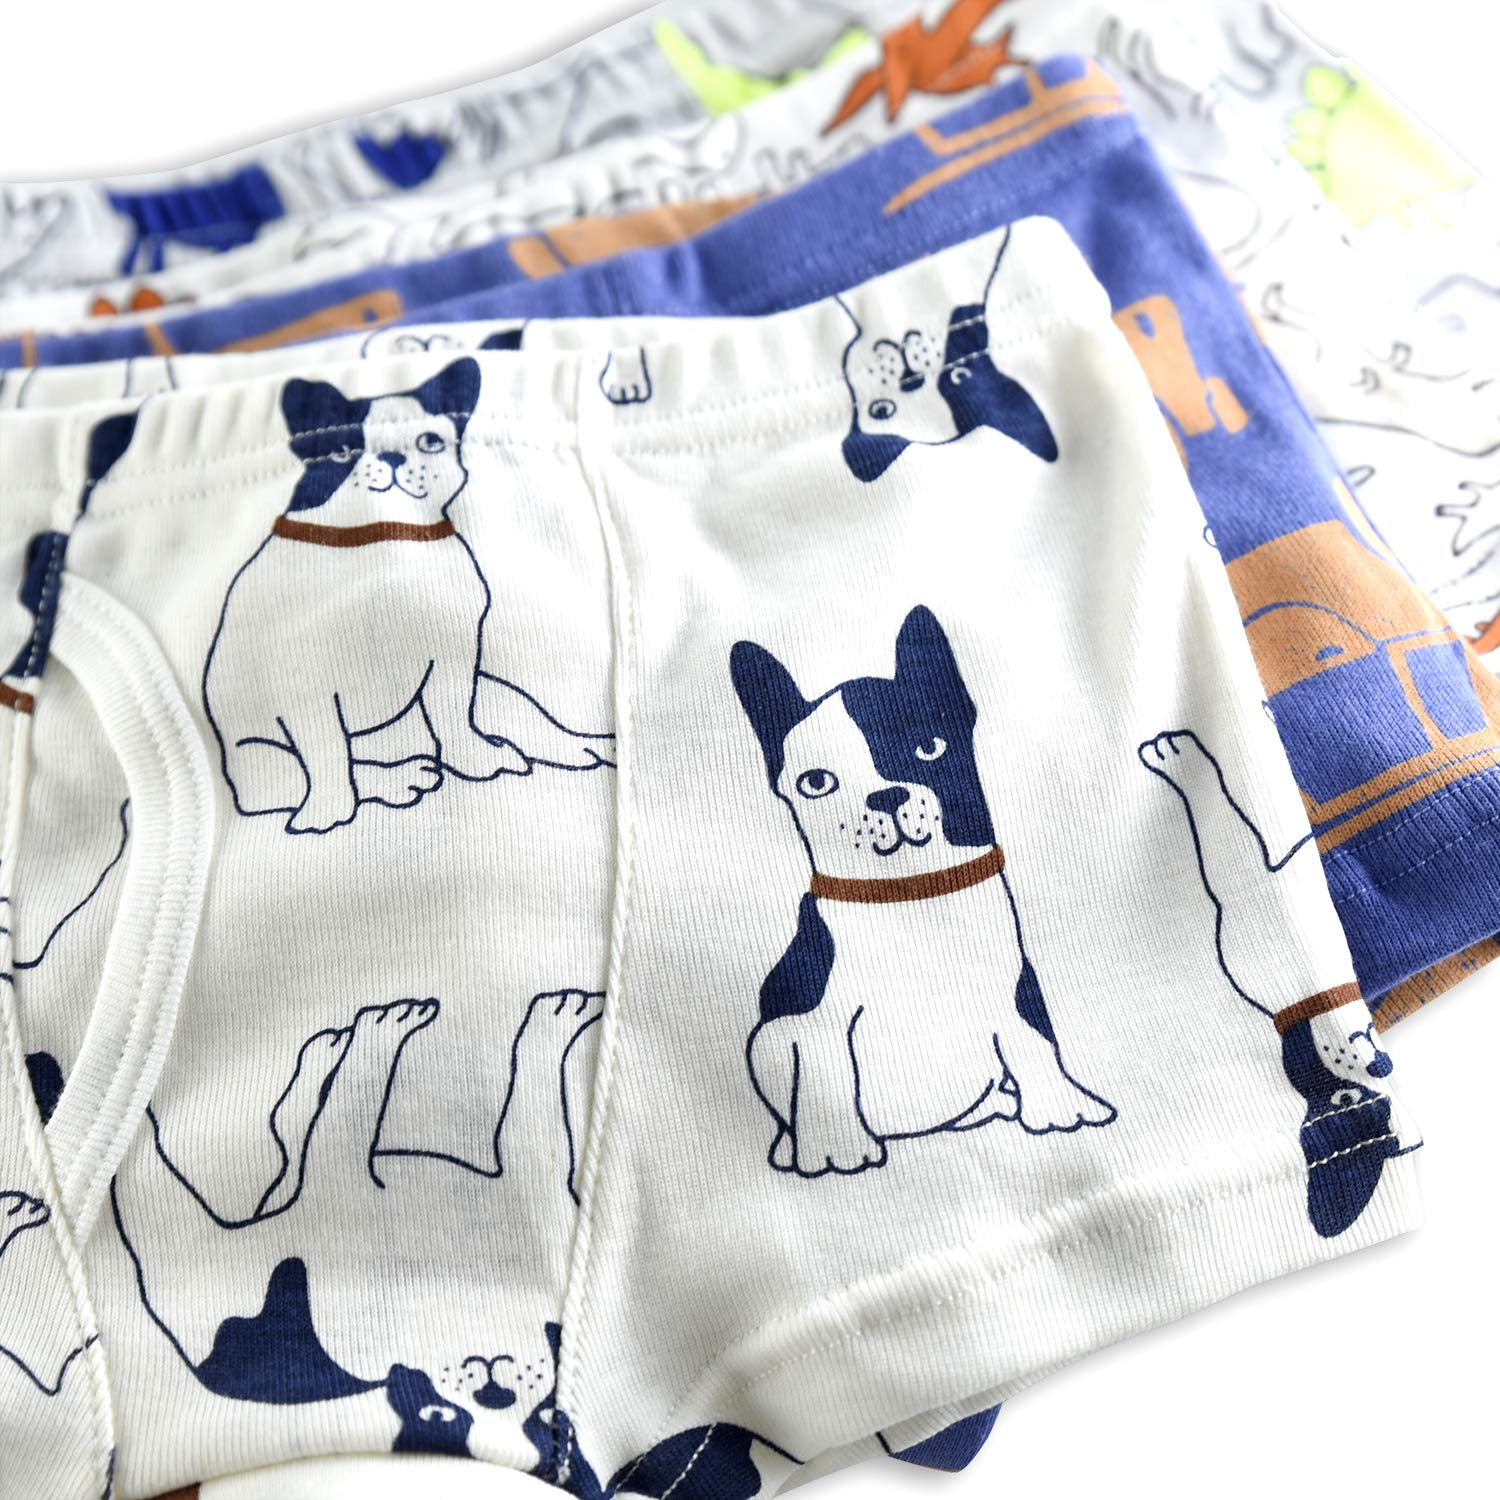 slaixiu Soft Cotton Kids Boxer Briefs Cartoon Boys Underwear Boxers 4-Pack (UW75-No.5-110)